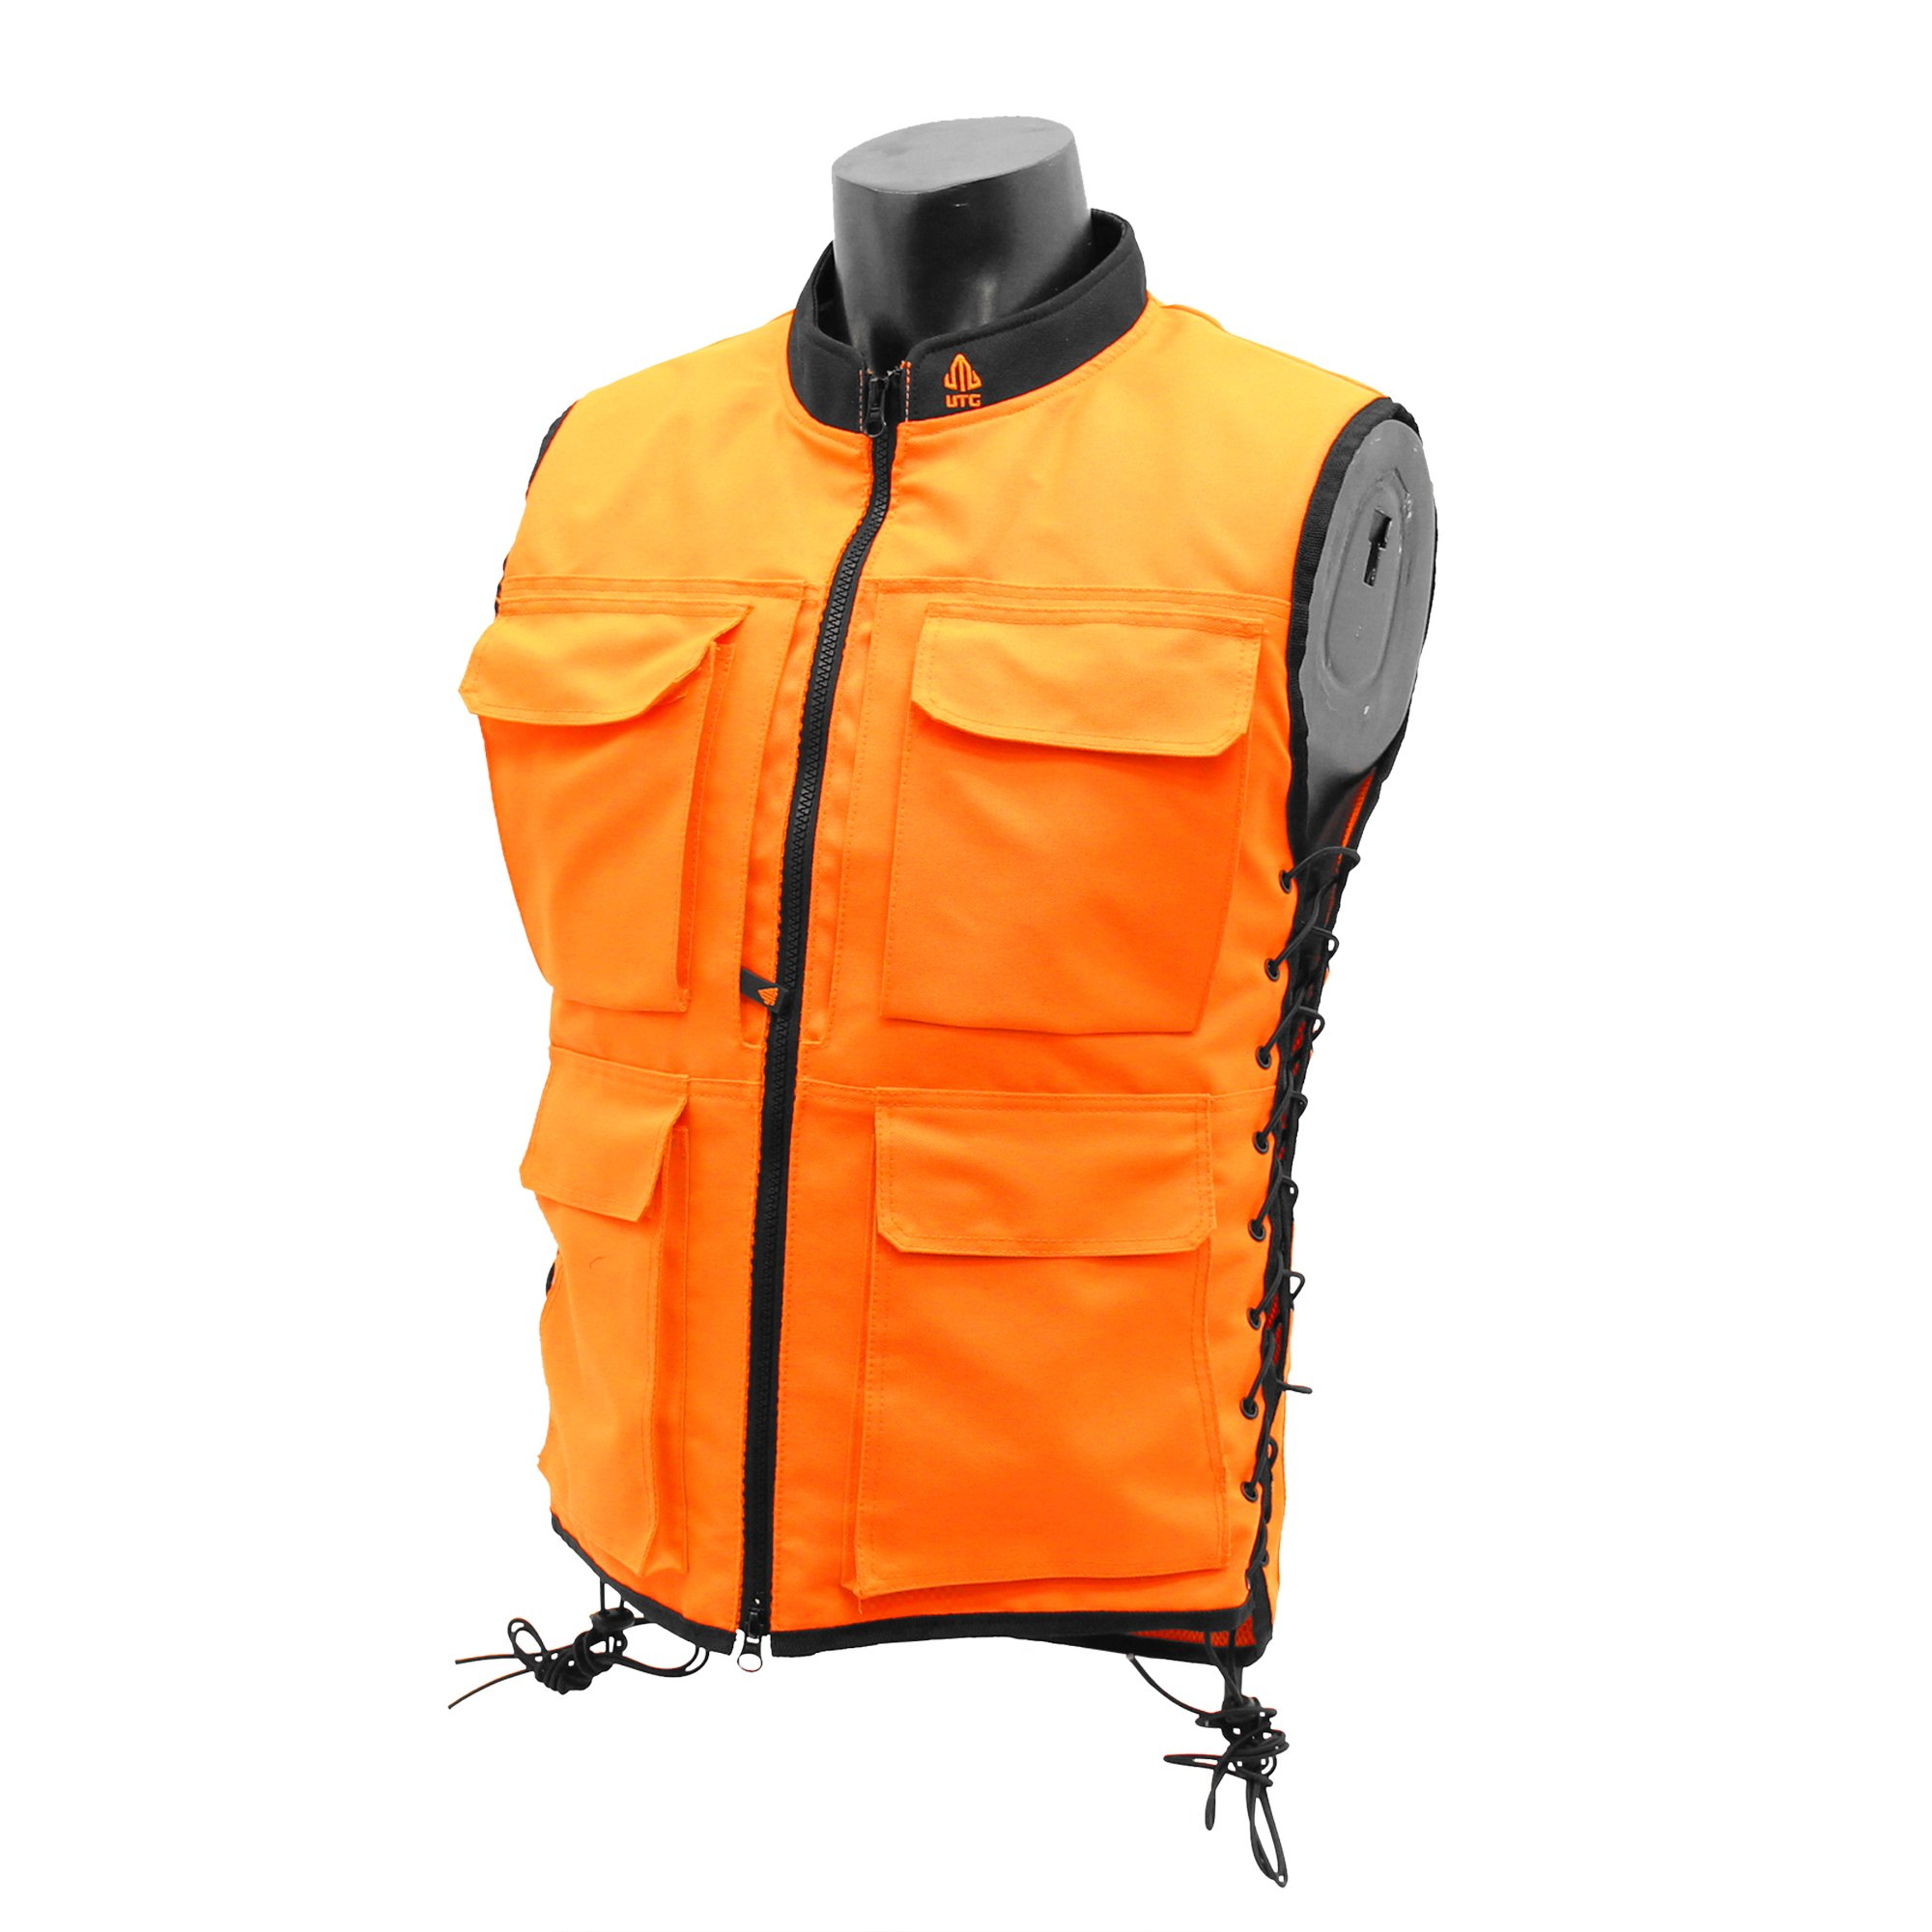 UTG True Hunter Male Sporting Vest (S to M), Orange/Black by UTG